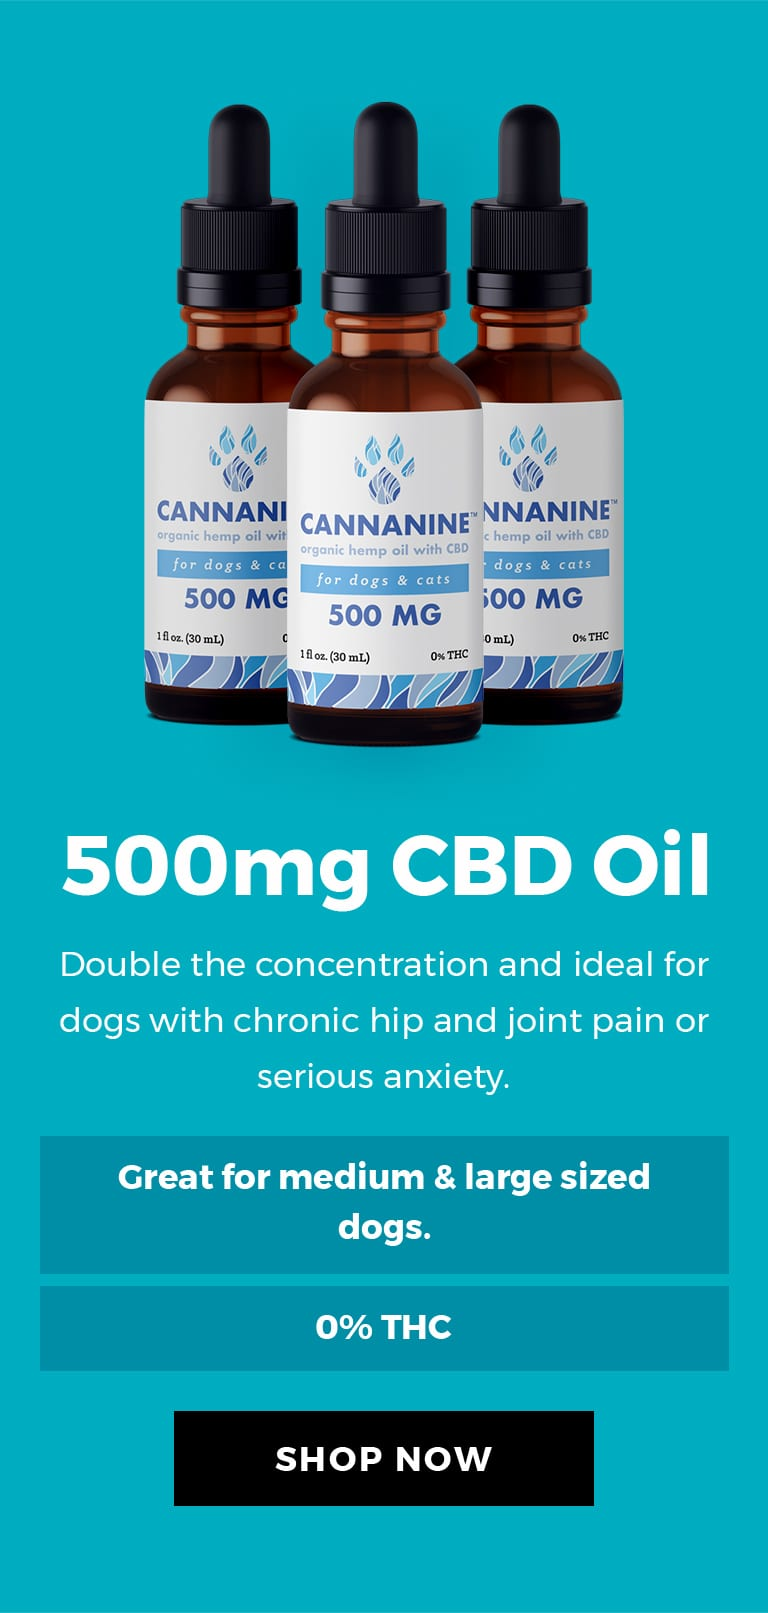 500mg CBD Oil - Double the concentration and ideal for dogs with chronic hip and joint pain or serious anxiety.